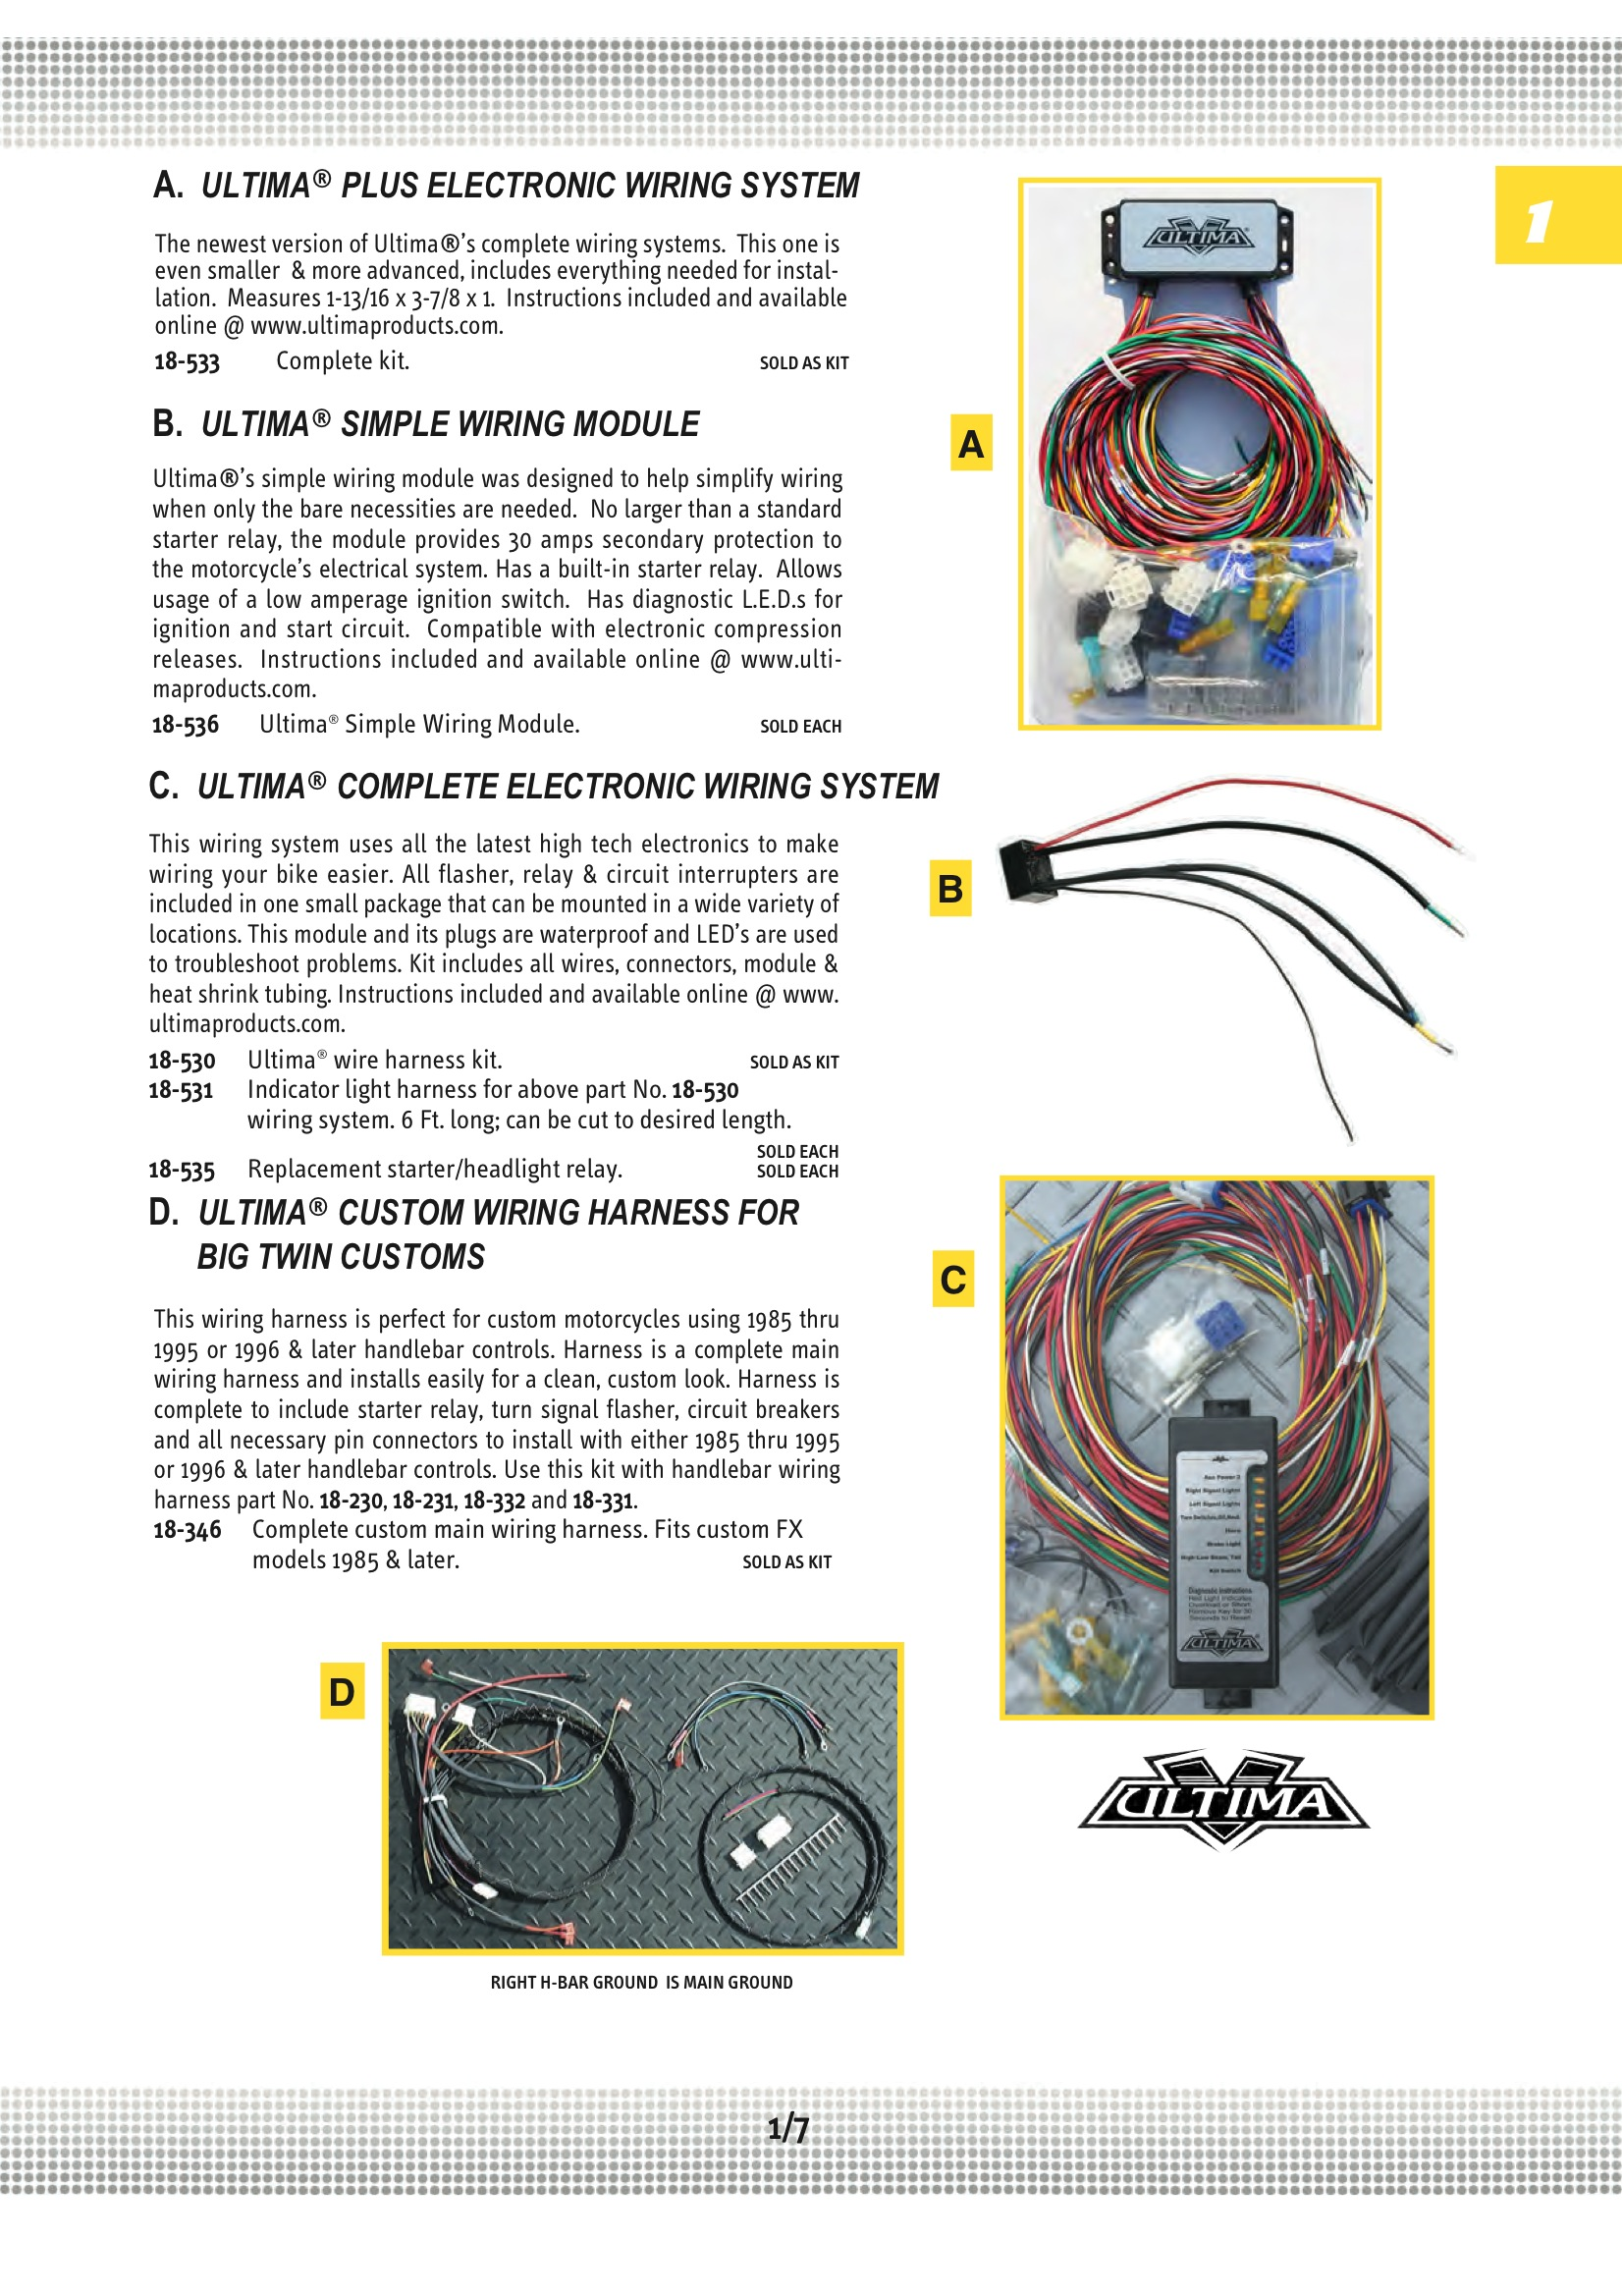 Ultima ULTIMA CUSTOM WIRING;HARNESS / BIG TWIN Midwest 18-346 on